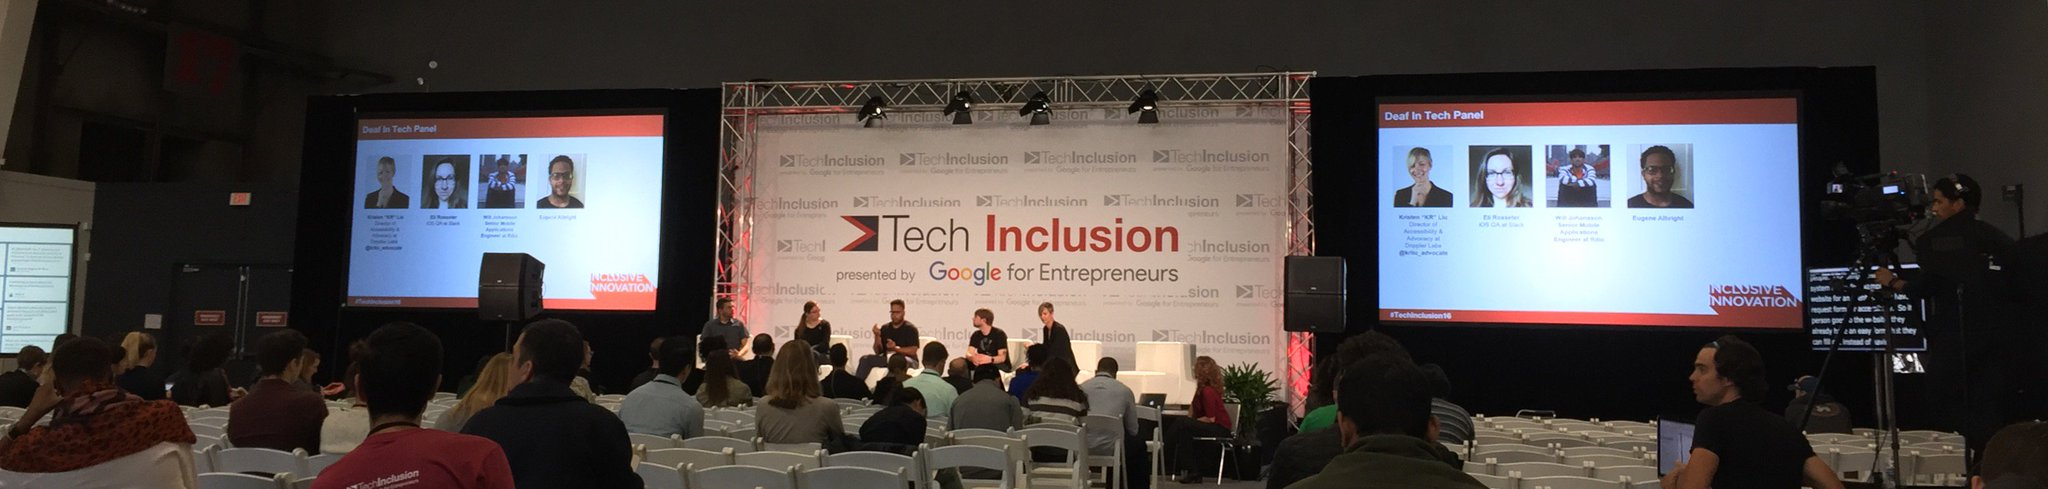 powerful #a11y panel on Deaf In Tech at #TechInclusion16 https://t.co/rXwMfYc0Xf